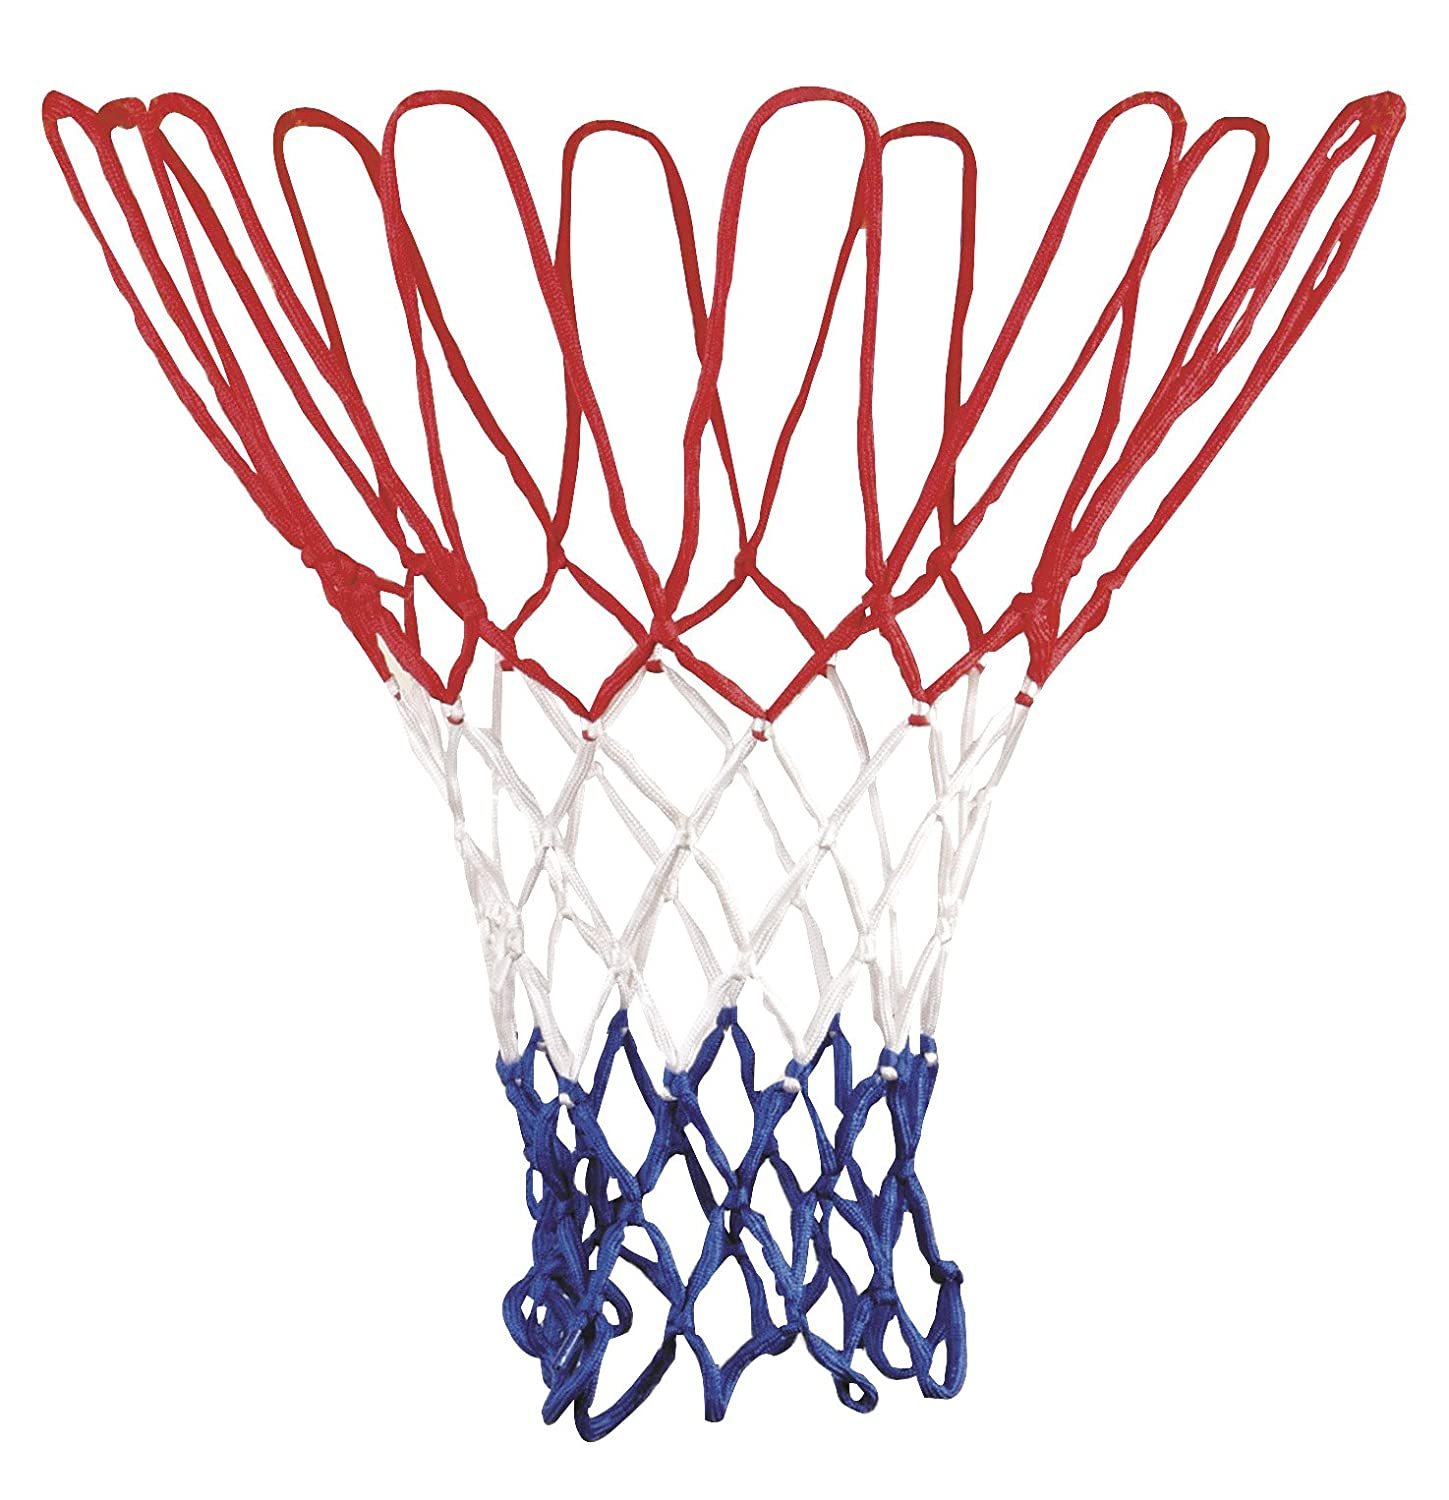 Nankod Red de Baloncesto Universal Blanco y Azul Color Rojo 5 mm